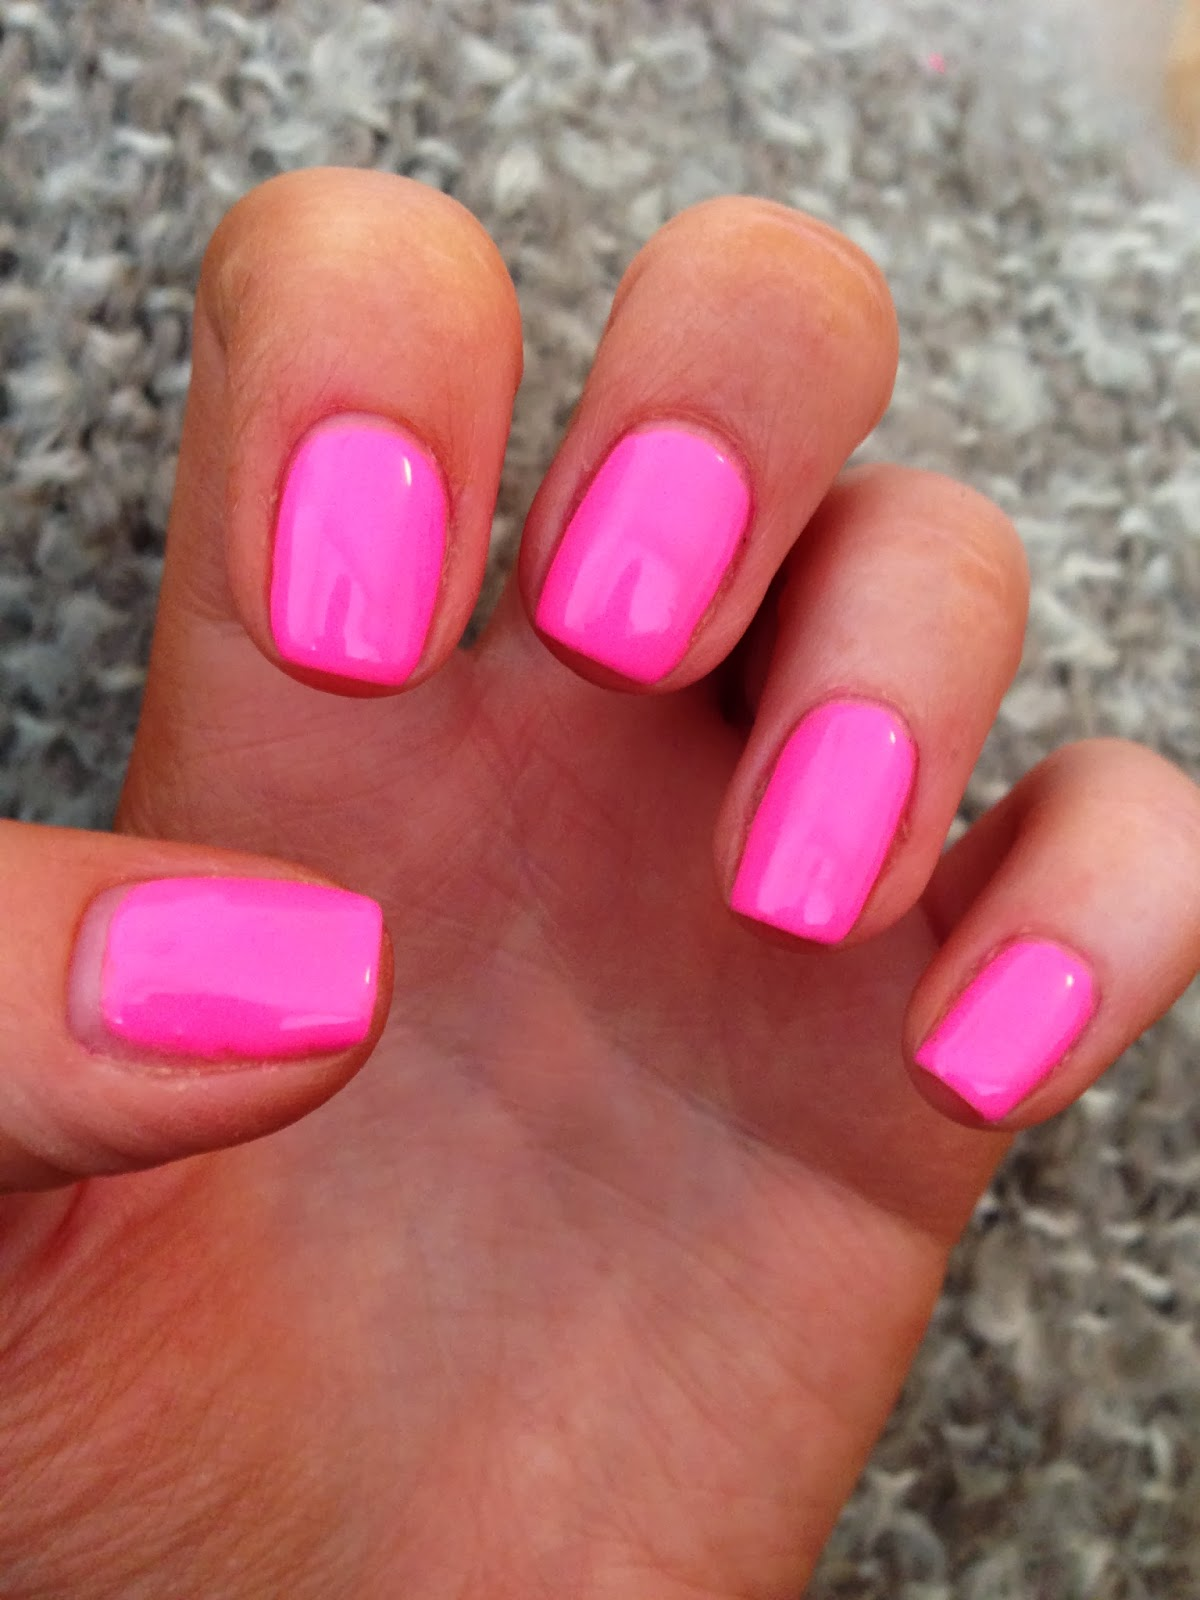 NailsByNumbers: NOTD! Gelish \'Make you Blink Pink\' - Neon Pink